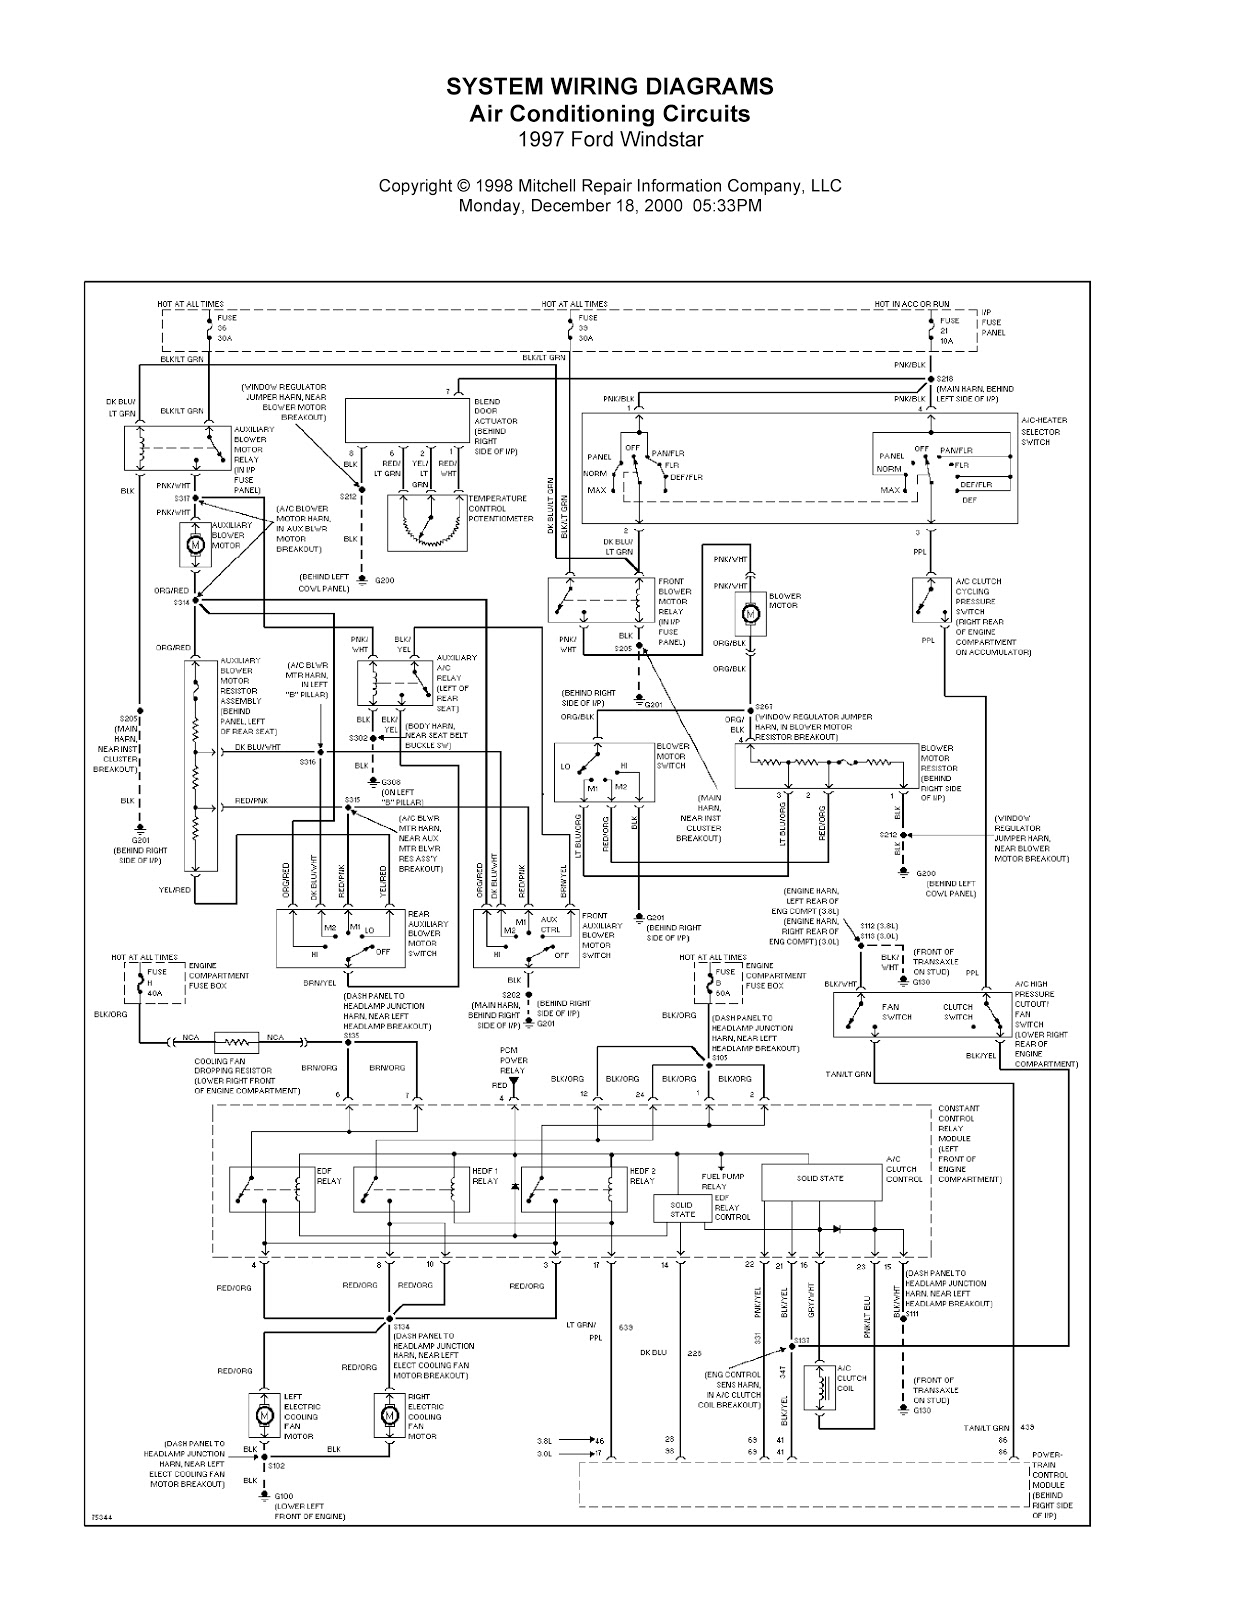 0001 1997 ford windstar complete system wiring diagrams wiring 1999 ford explorer rear wiper wiring diagram at readyjetset.co